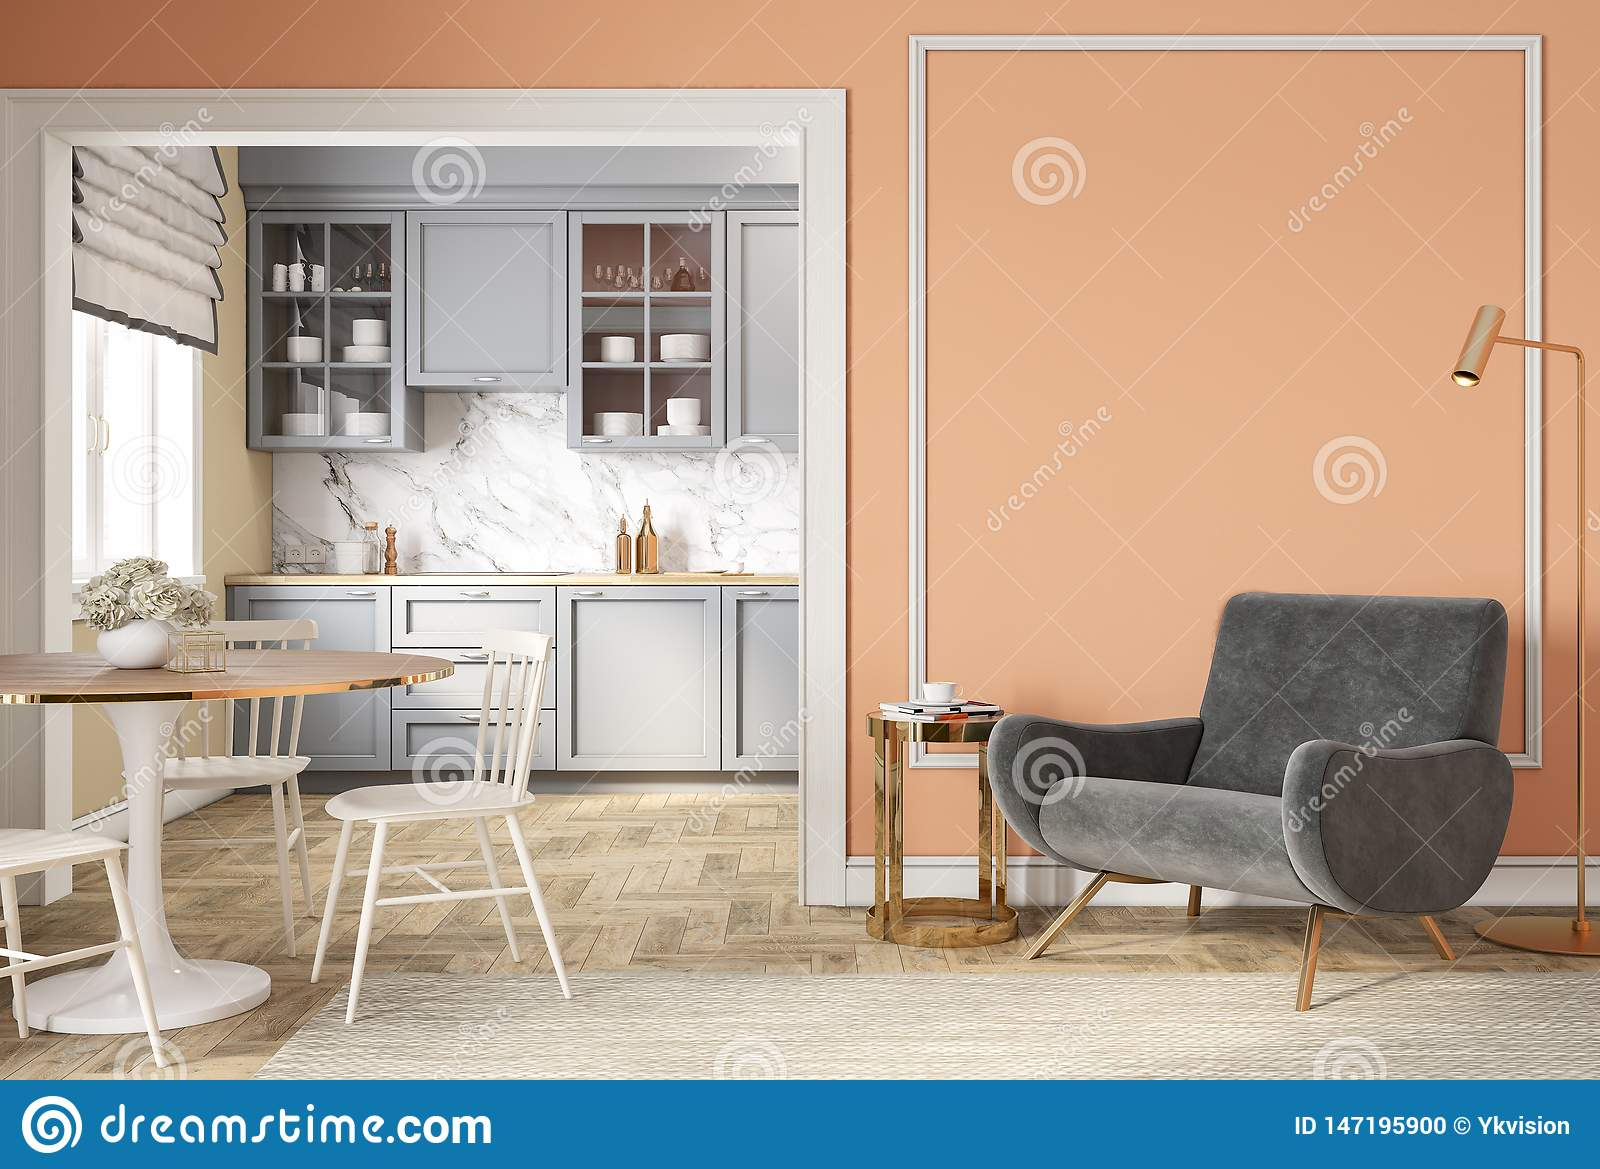 Picture of: Modern Classic Peach Beige Interior With Lounge Chair Armchair Kitchen Dining Table Stock Illustration Illustration Of Apartment Lounge 147195900